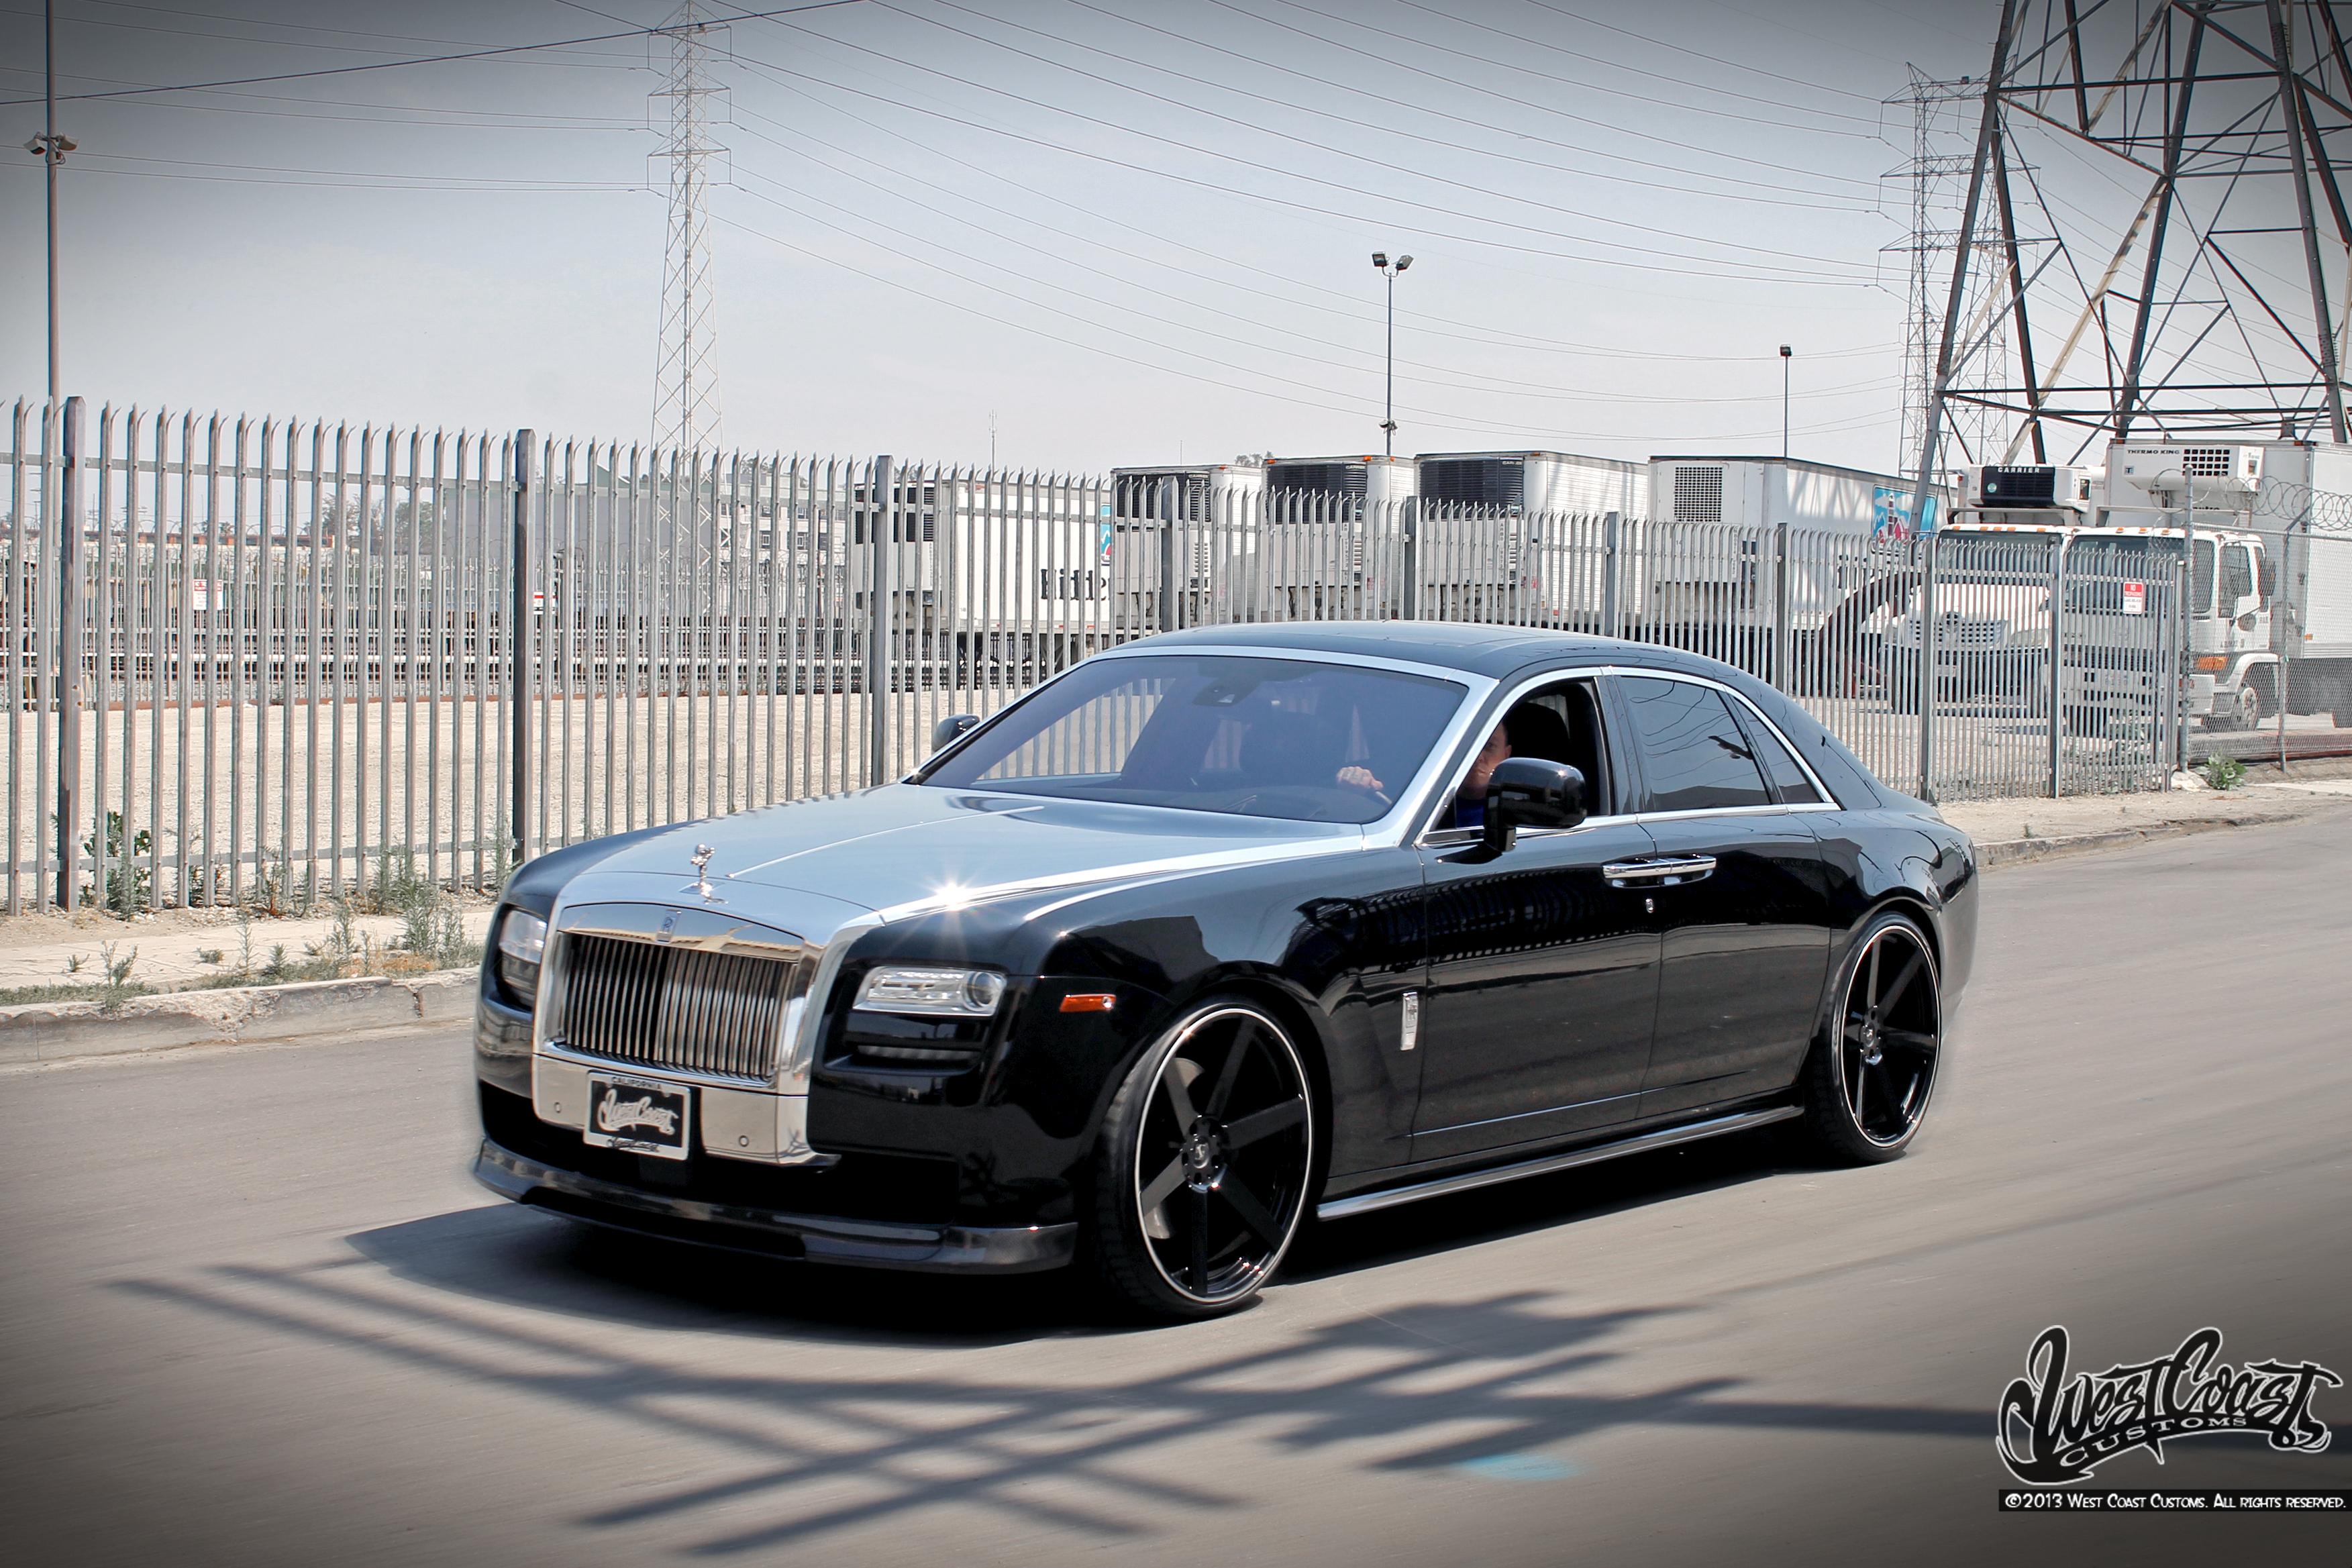 West Coast Customs Cars For Sale >> Avery Dennison S Car Wrap Films Featured In West Coast